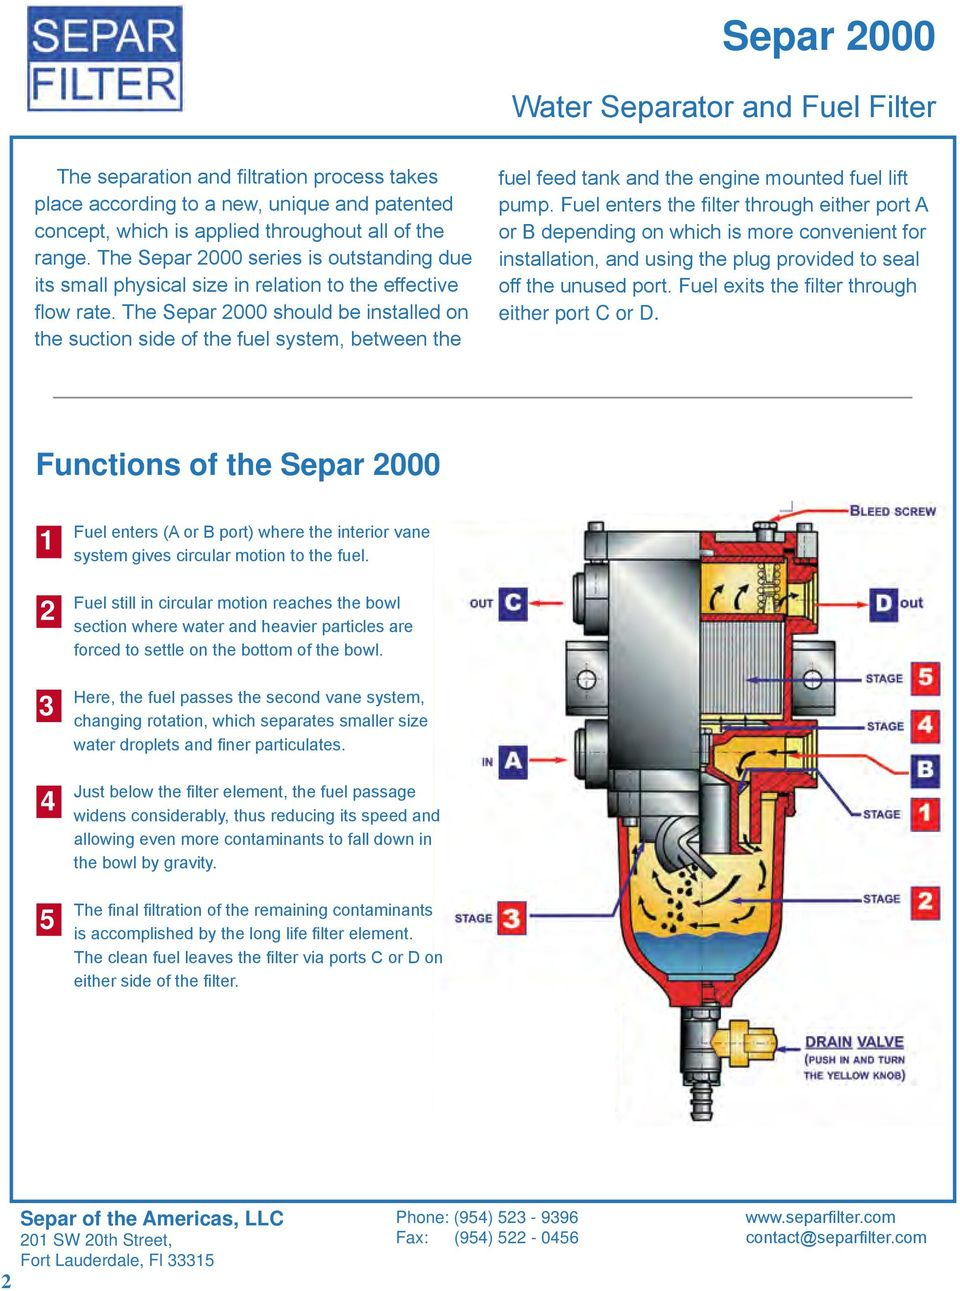 The Separ 000 should be installed on the suction side of the fuel system, between the fuel feed tank and the engine mounted fuel lift pump.